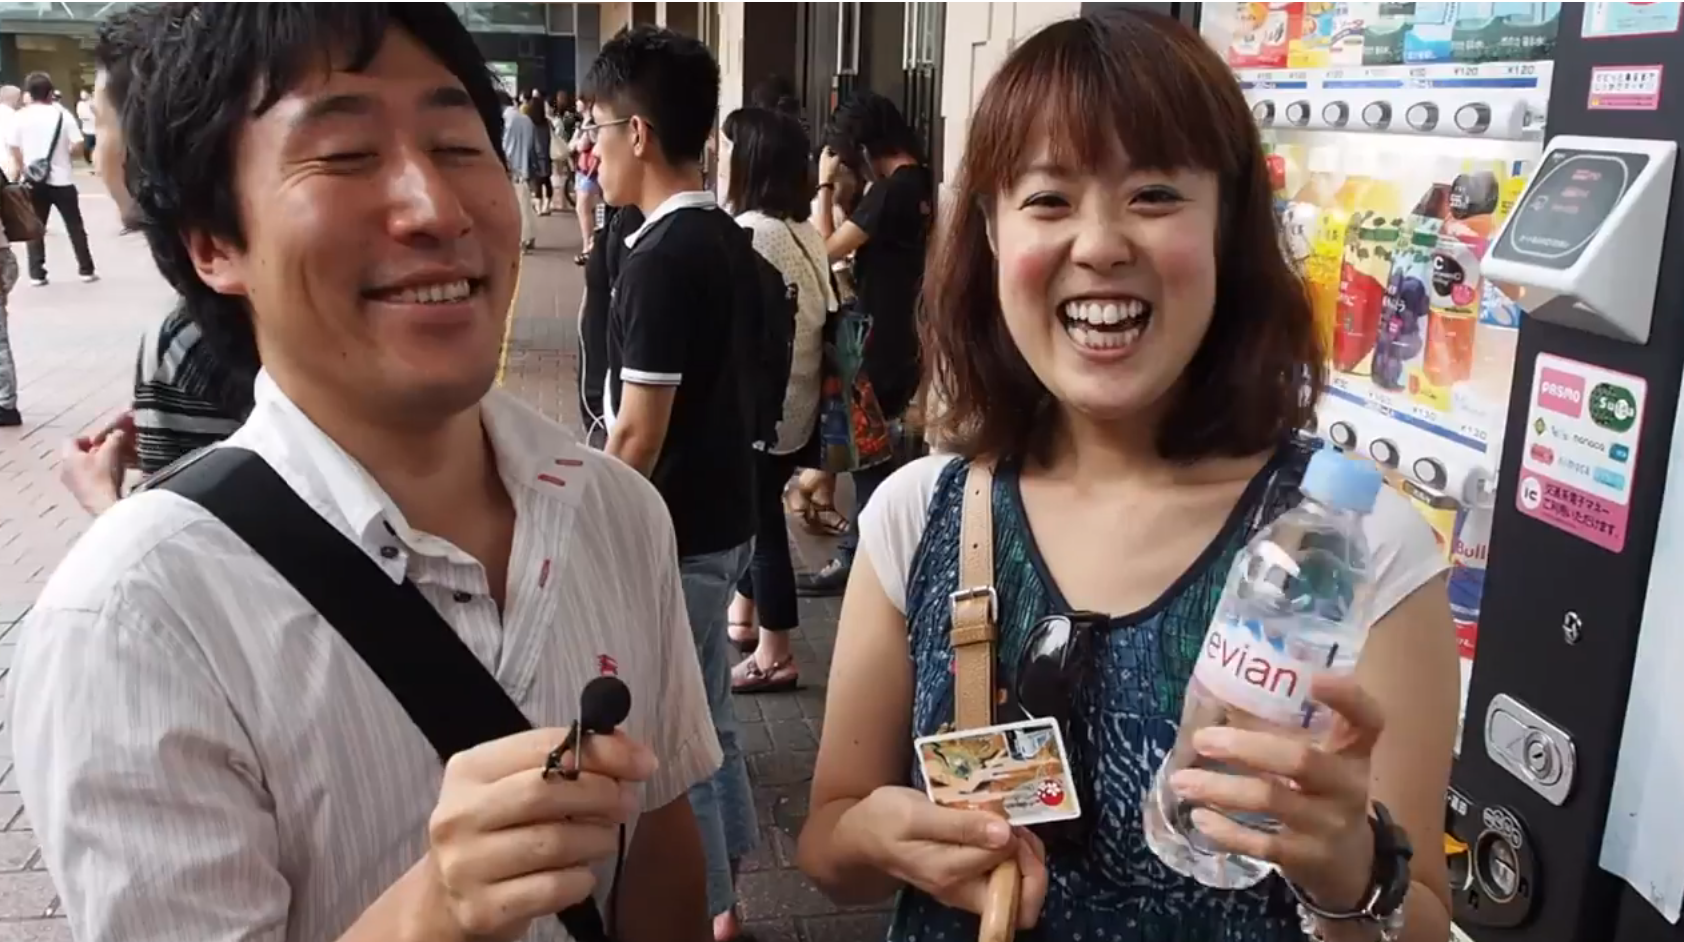 How to purchase a Suica Card in Japan